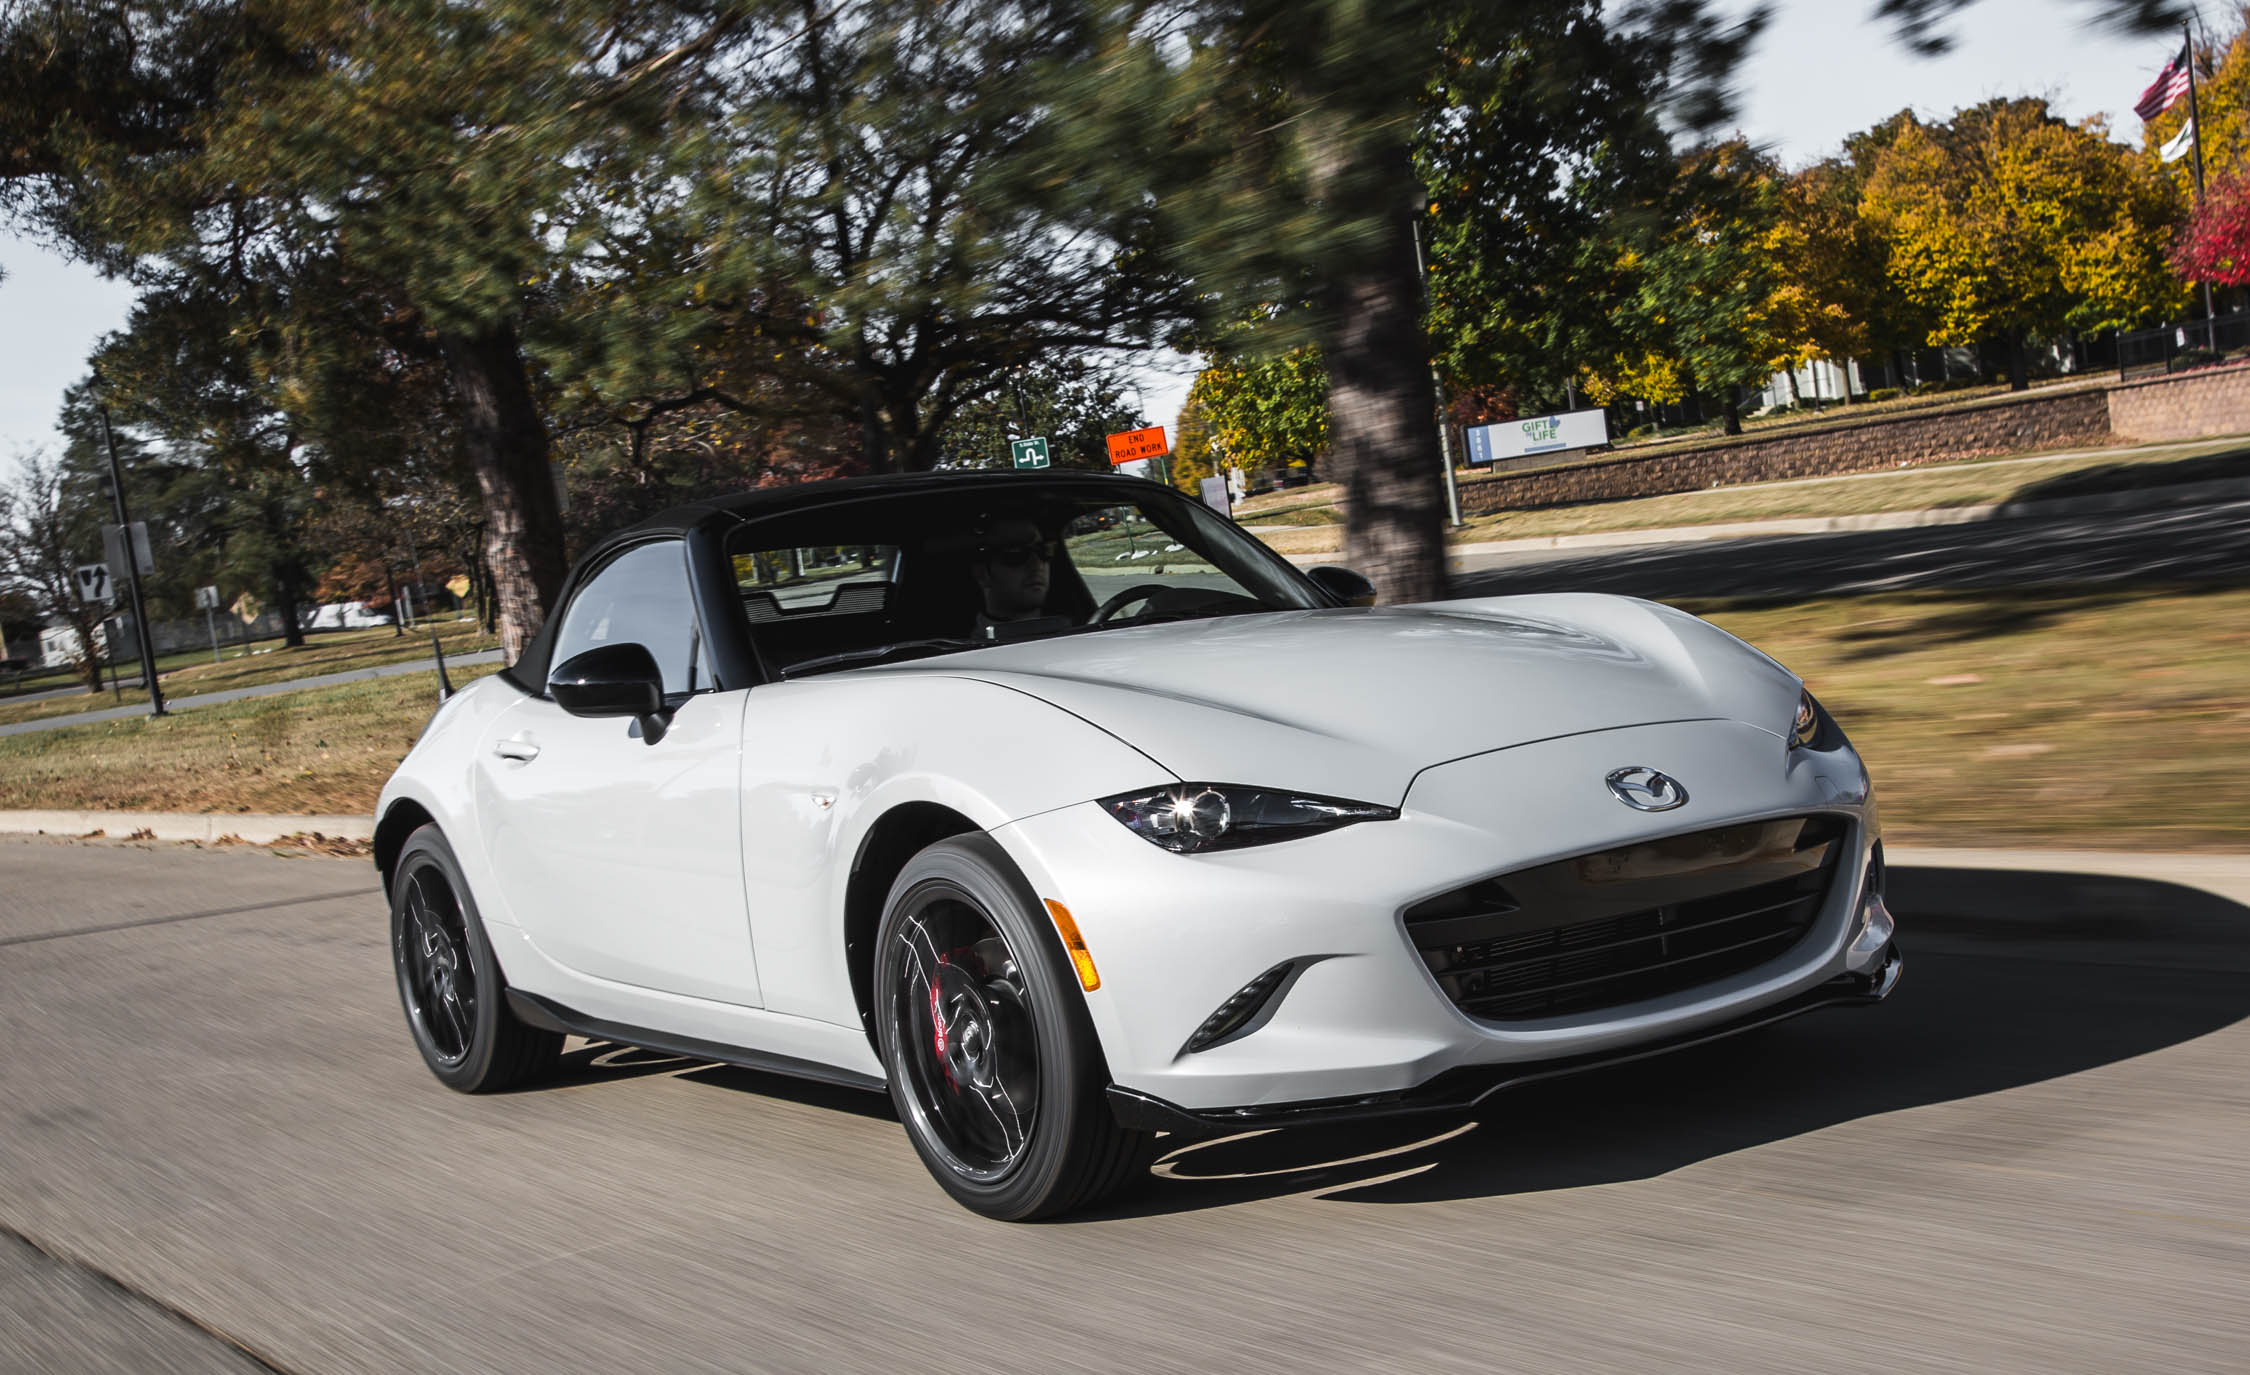 2016 Mazda MX-5 Miata Convertible Review